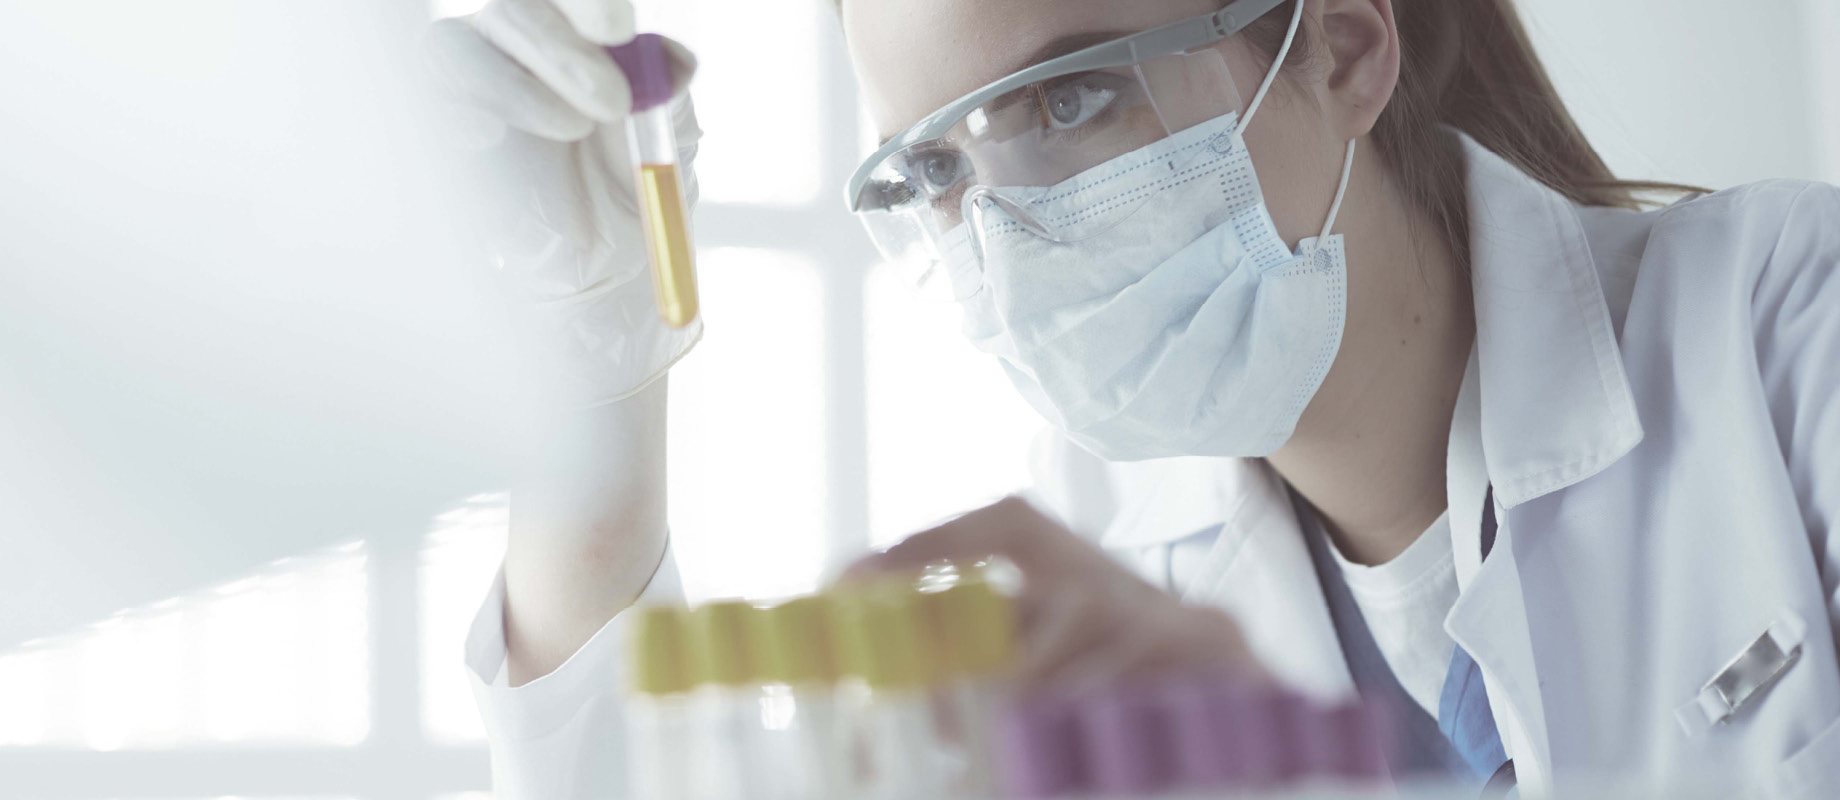 Are Your Laboratory Services Compliant?